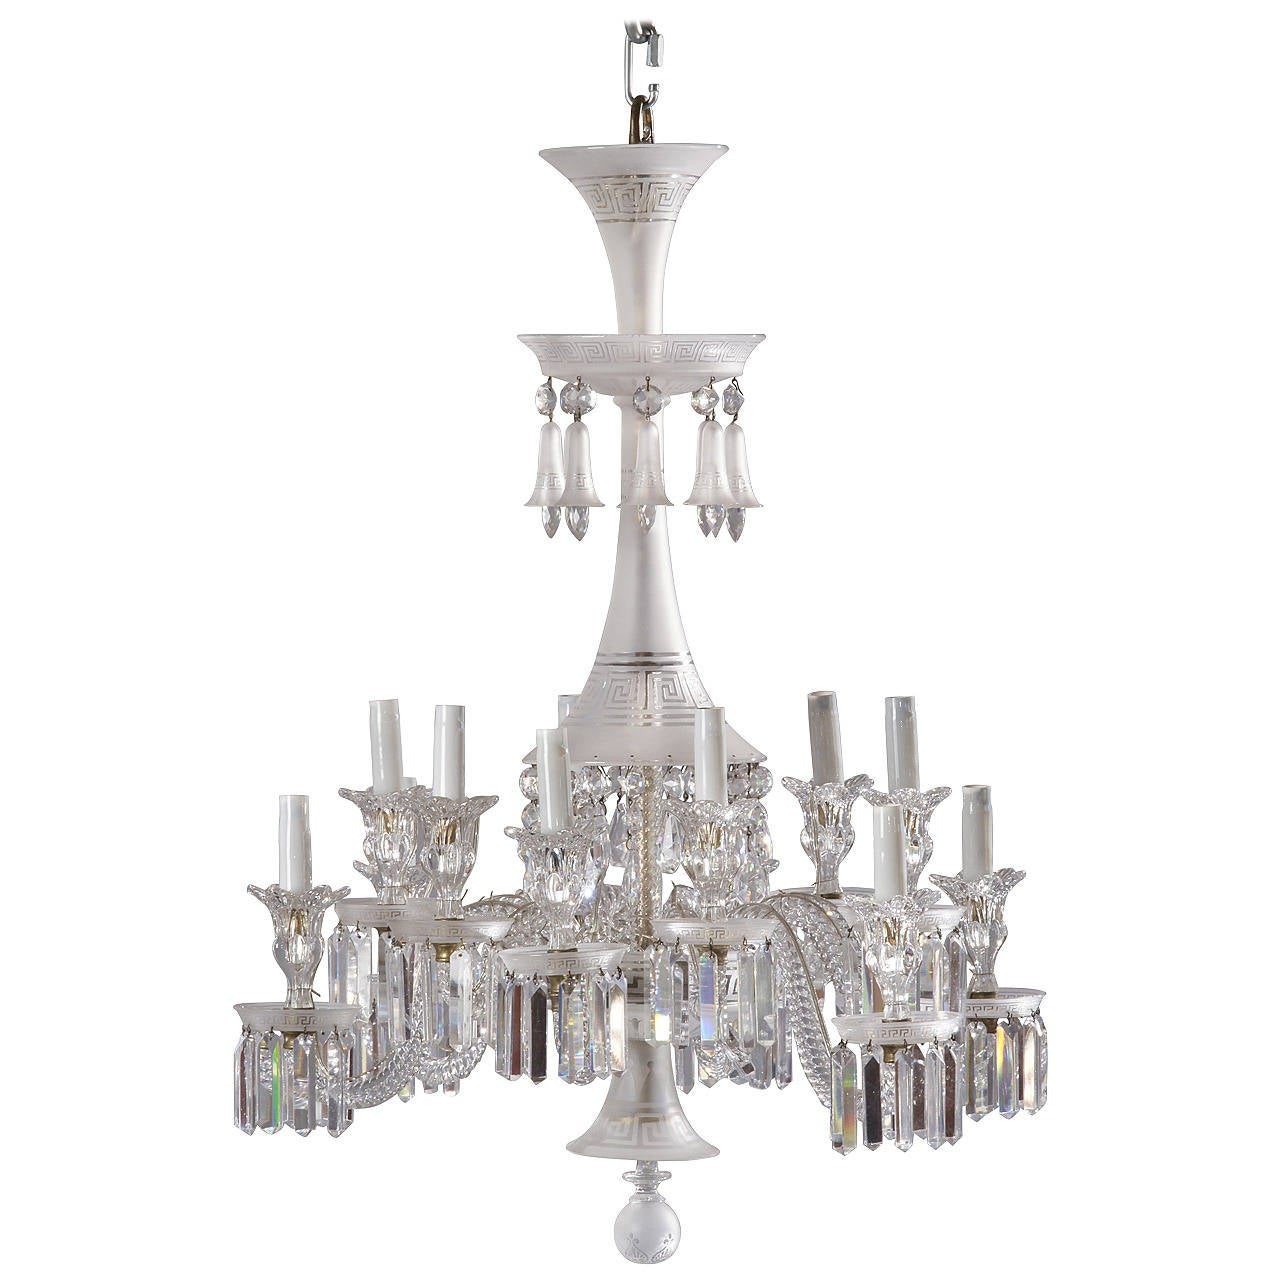 Neoclassical Chandelier by Baccarat